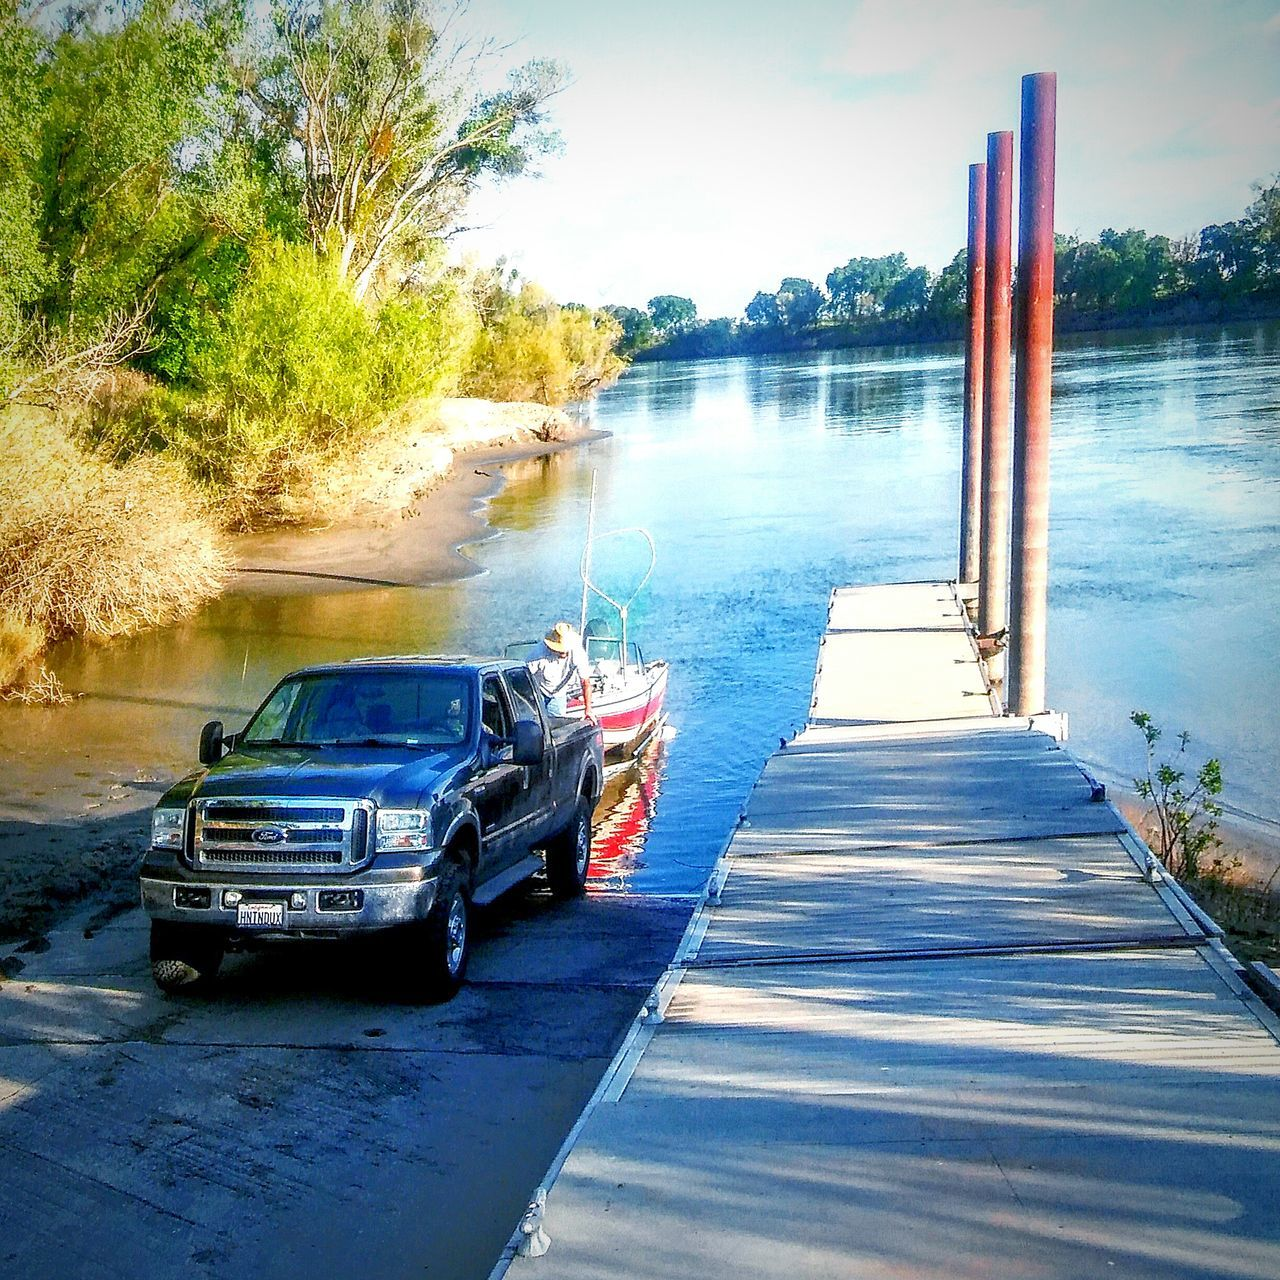 Riverside View Shadow Photography Sacramento River This Week On Eyeem Reflections In The Water My Photography Reflection On Water Water Reflections Boat Life Boat My Point Of View Nature On Your Doorstep Taking Photos Tree And Sky Trees Truck Boat Ramp